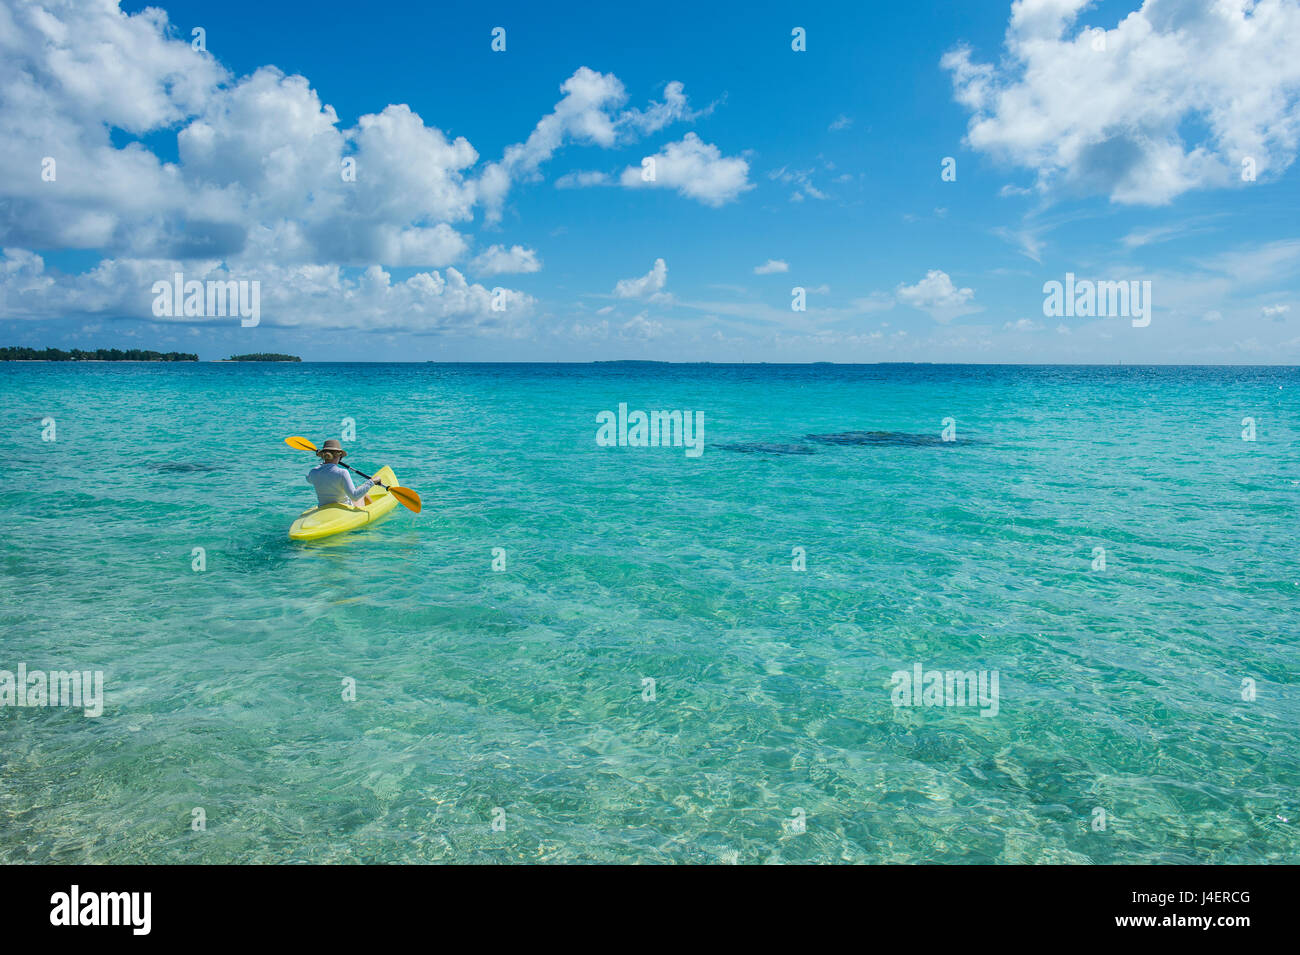 Woman kayaking in the turquoise waters of Tikehau, Tuamotus, French Polynesia, Pacific - Stock Image